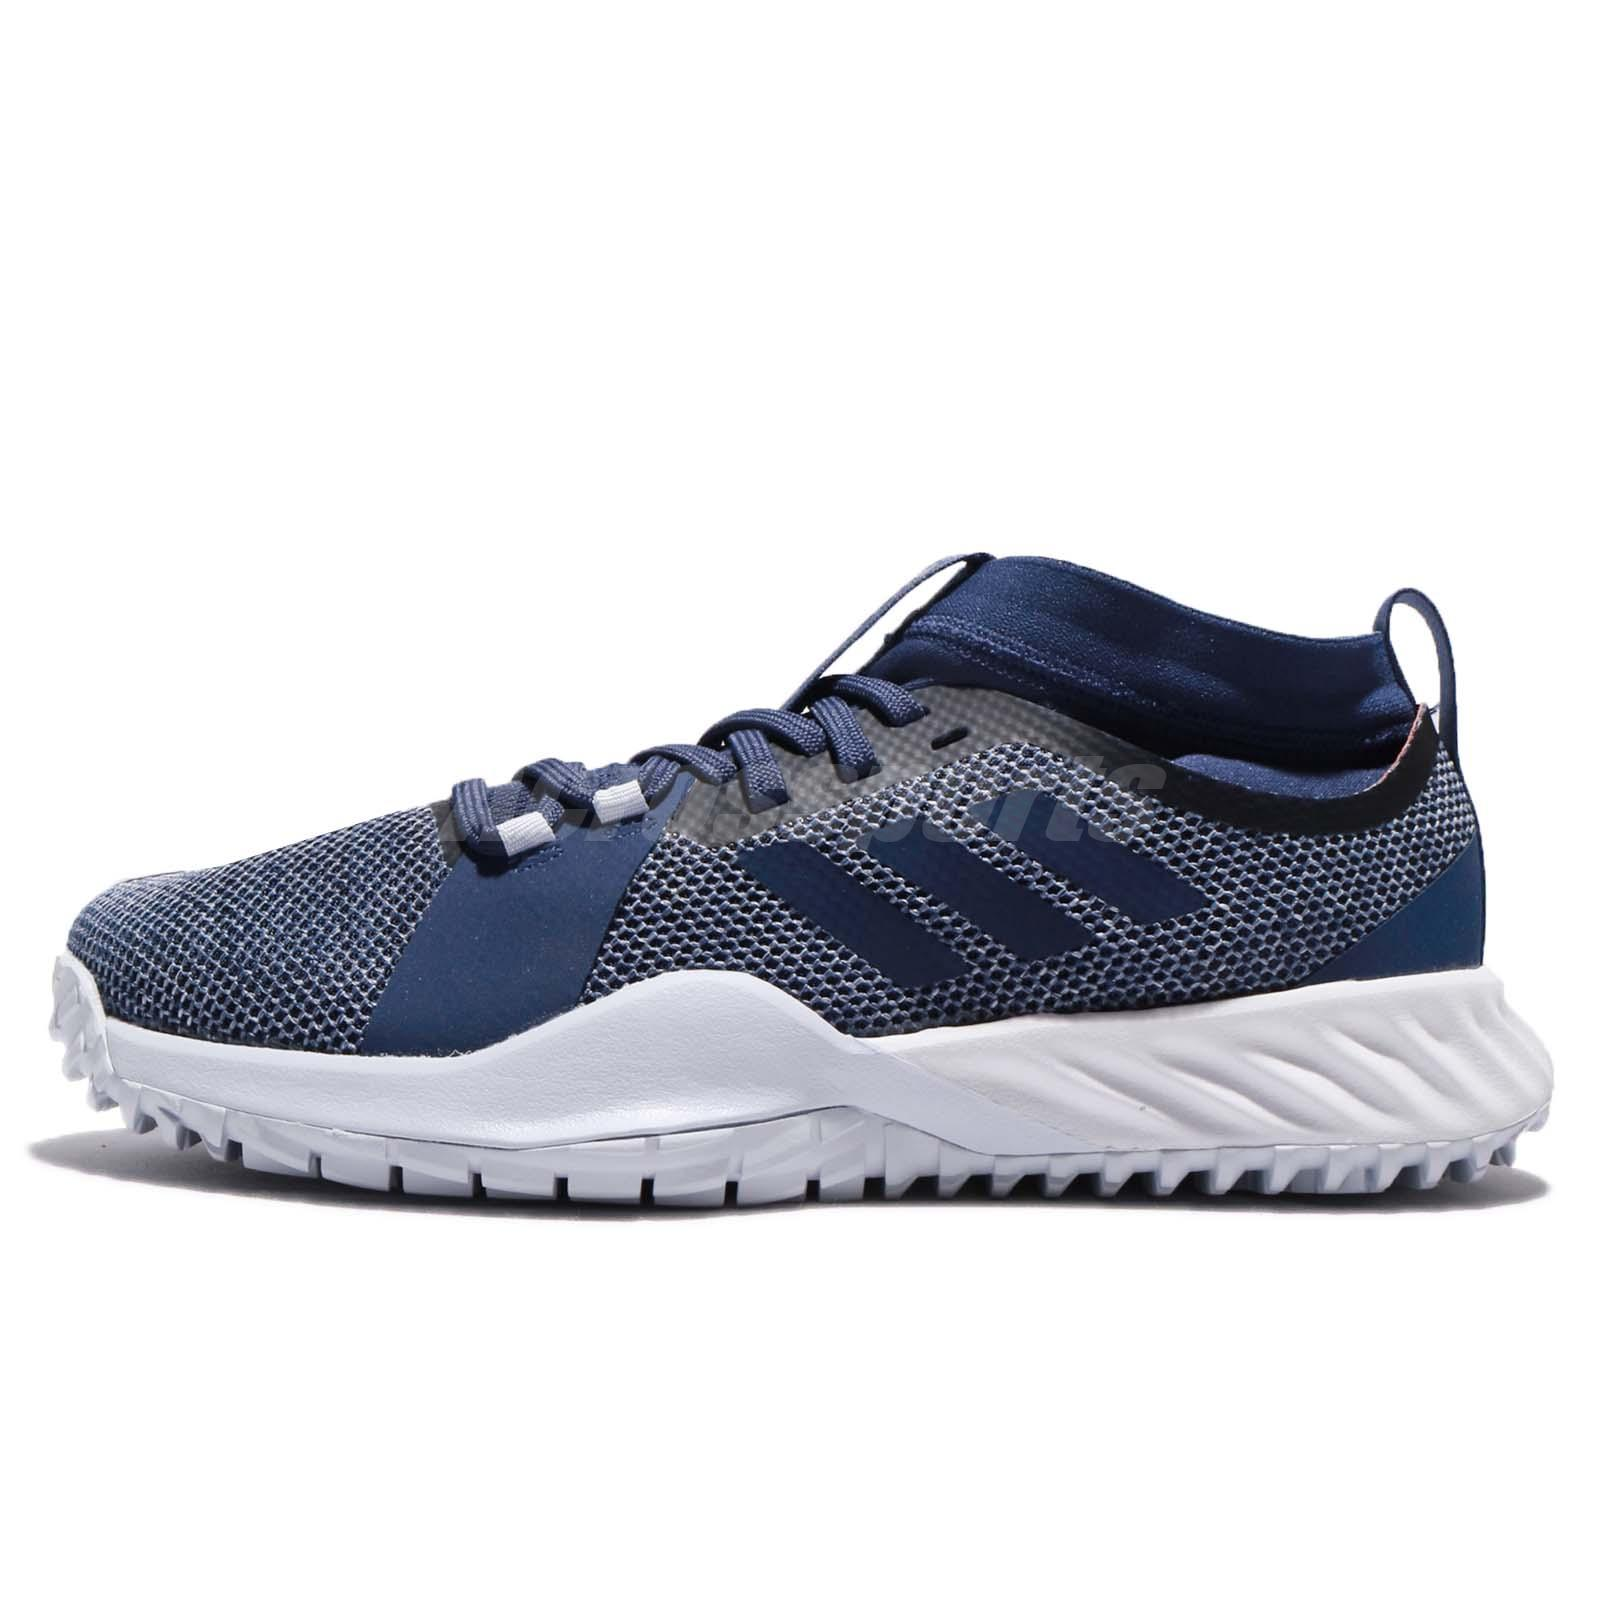 buy popular 4d45a 25d86 adidas CrazyTrain Pro 3.0 TRF W Blue White Women Cross Training Shoes CG3478